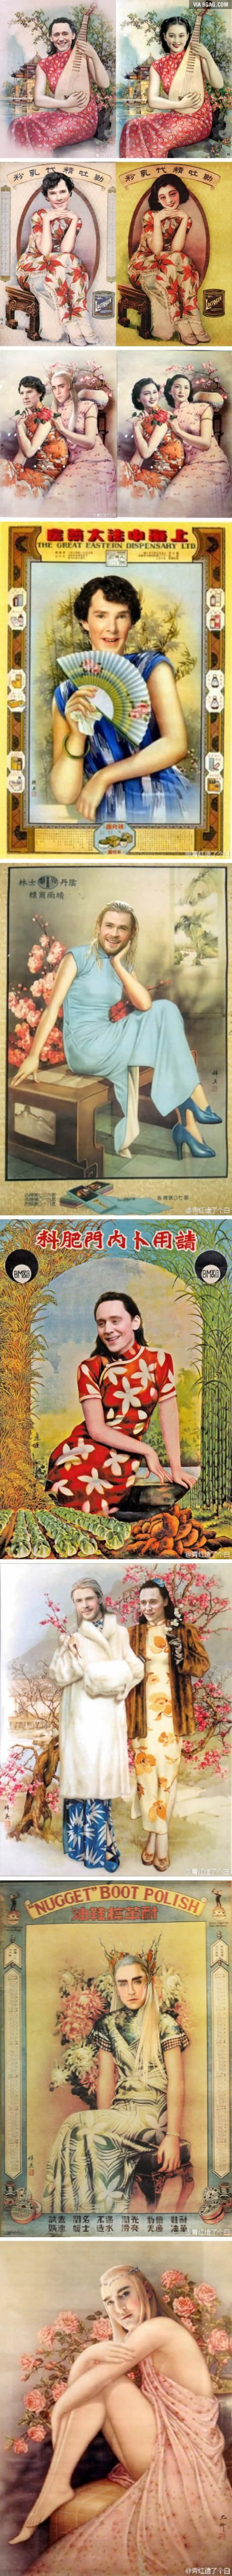 Tom Hiddleston and Benedict Cumberbatch as 1930s Shanghai girls works surprisingly well (NSFW-ish)